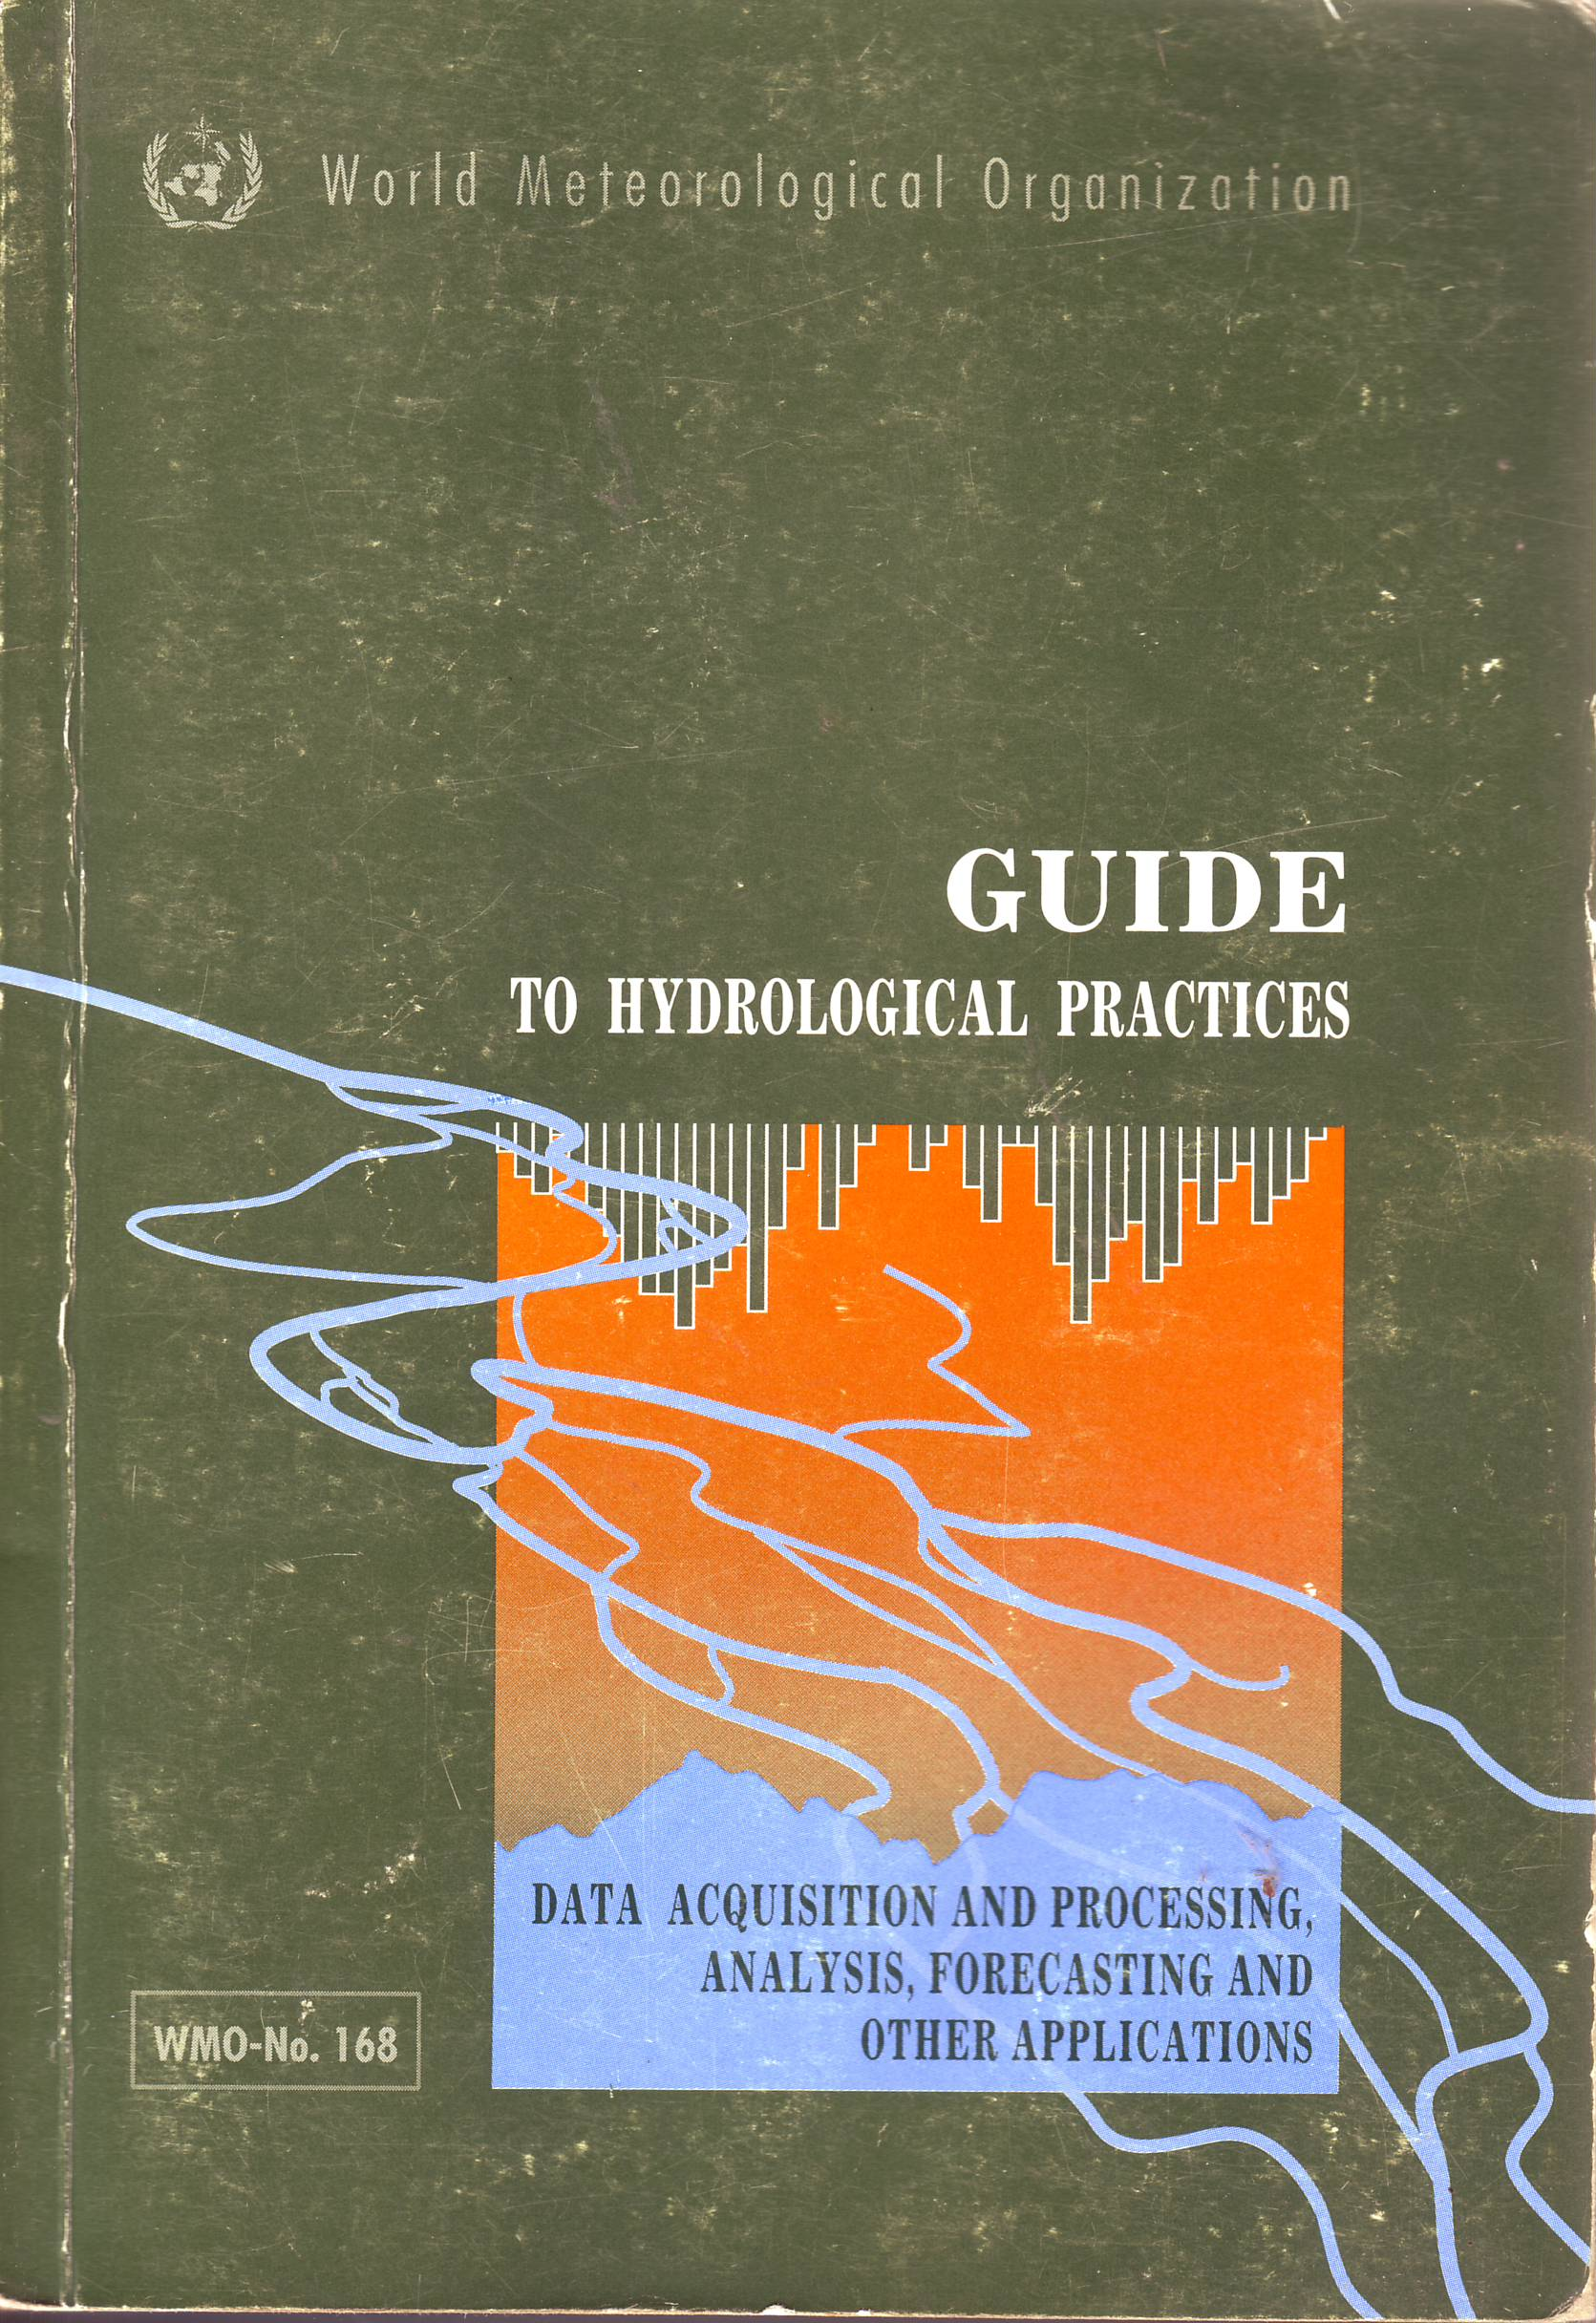 Guide to Hydrological Practices